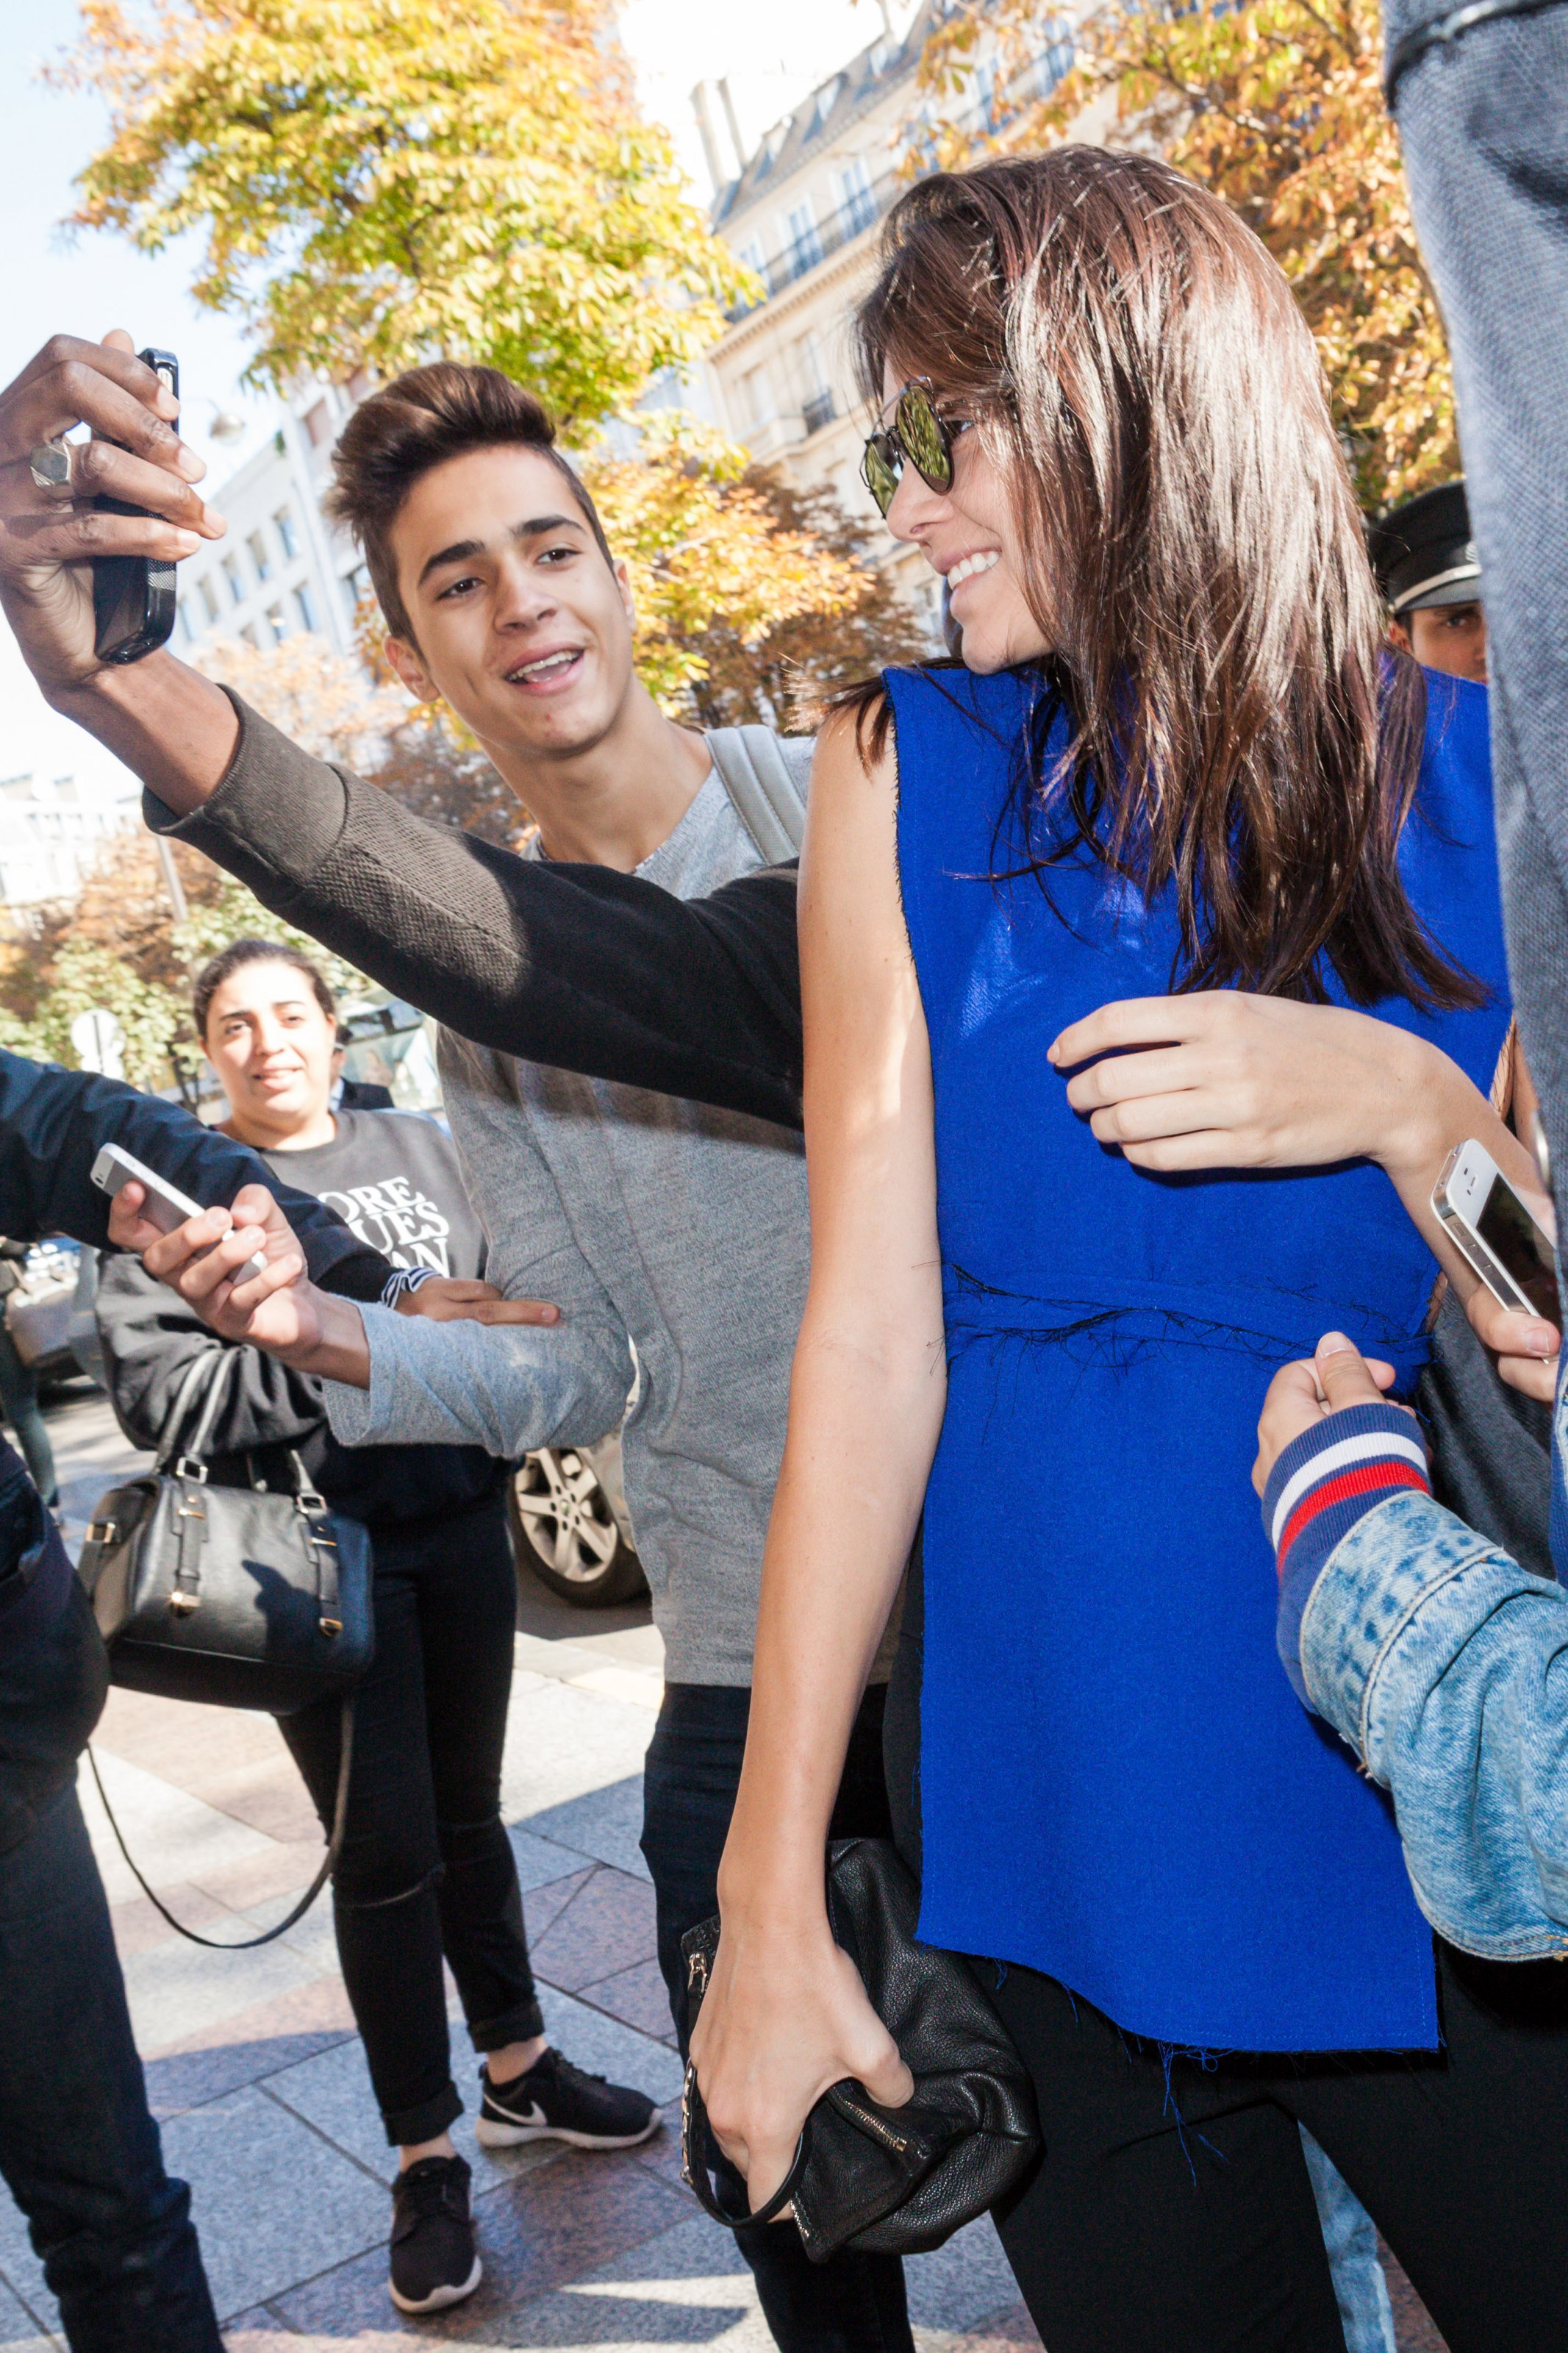 Kendall Jenner arriving at the hotel George V in Paris, France on September 30, 2015 as part of Paris Fashion Week. Kendall wearing a blue top and a black pant. Photo by ABACAPRESS.COM